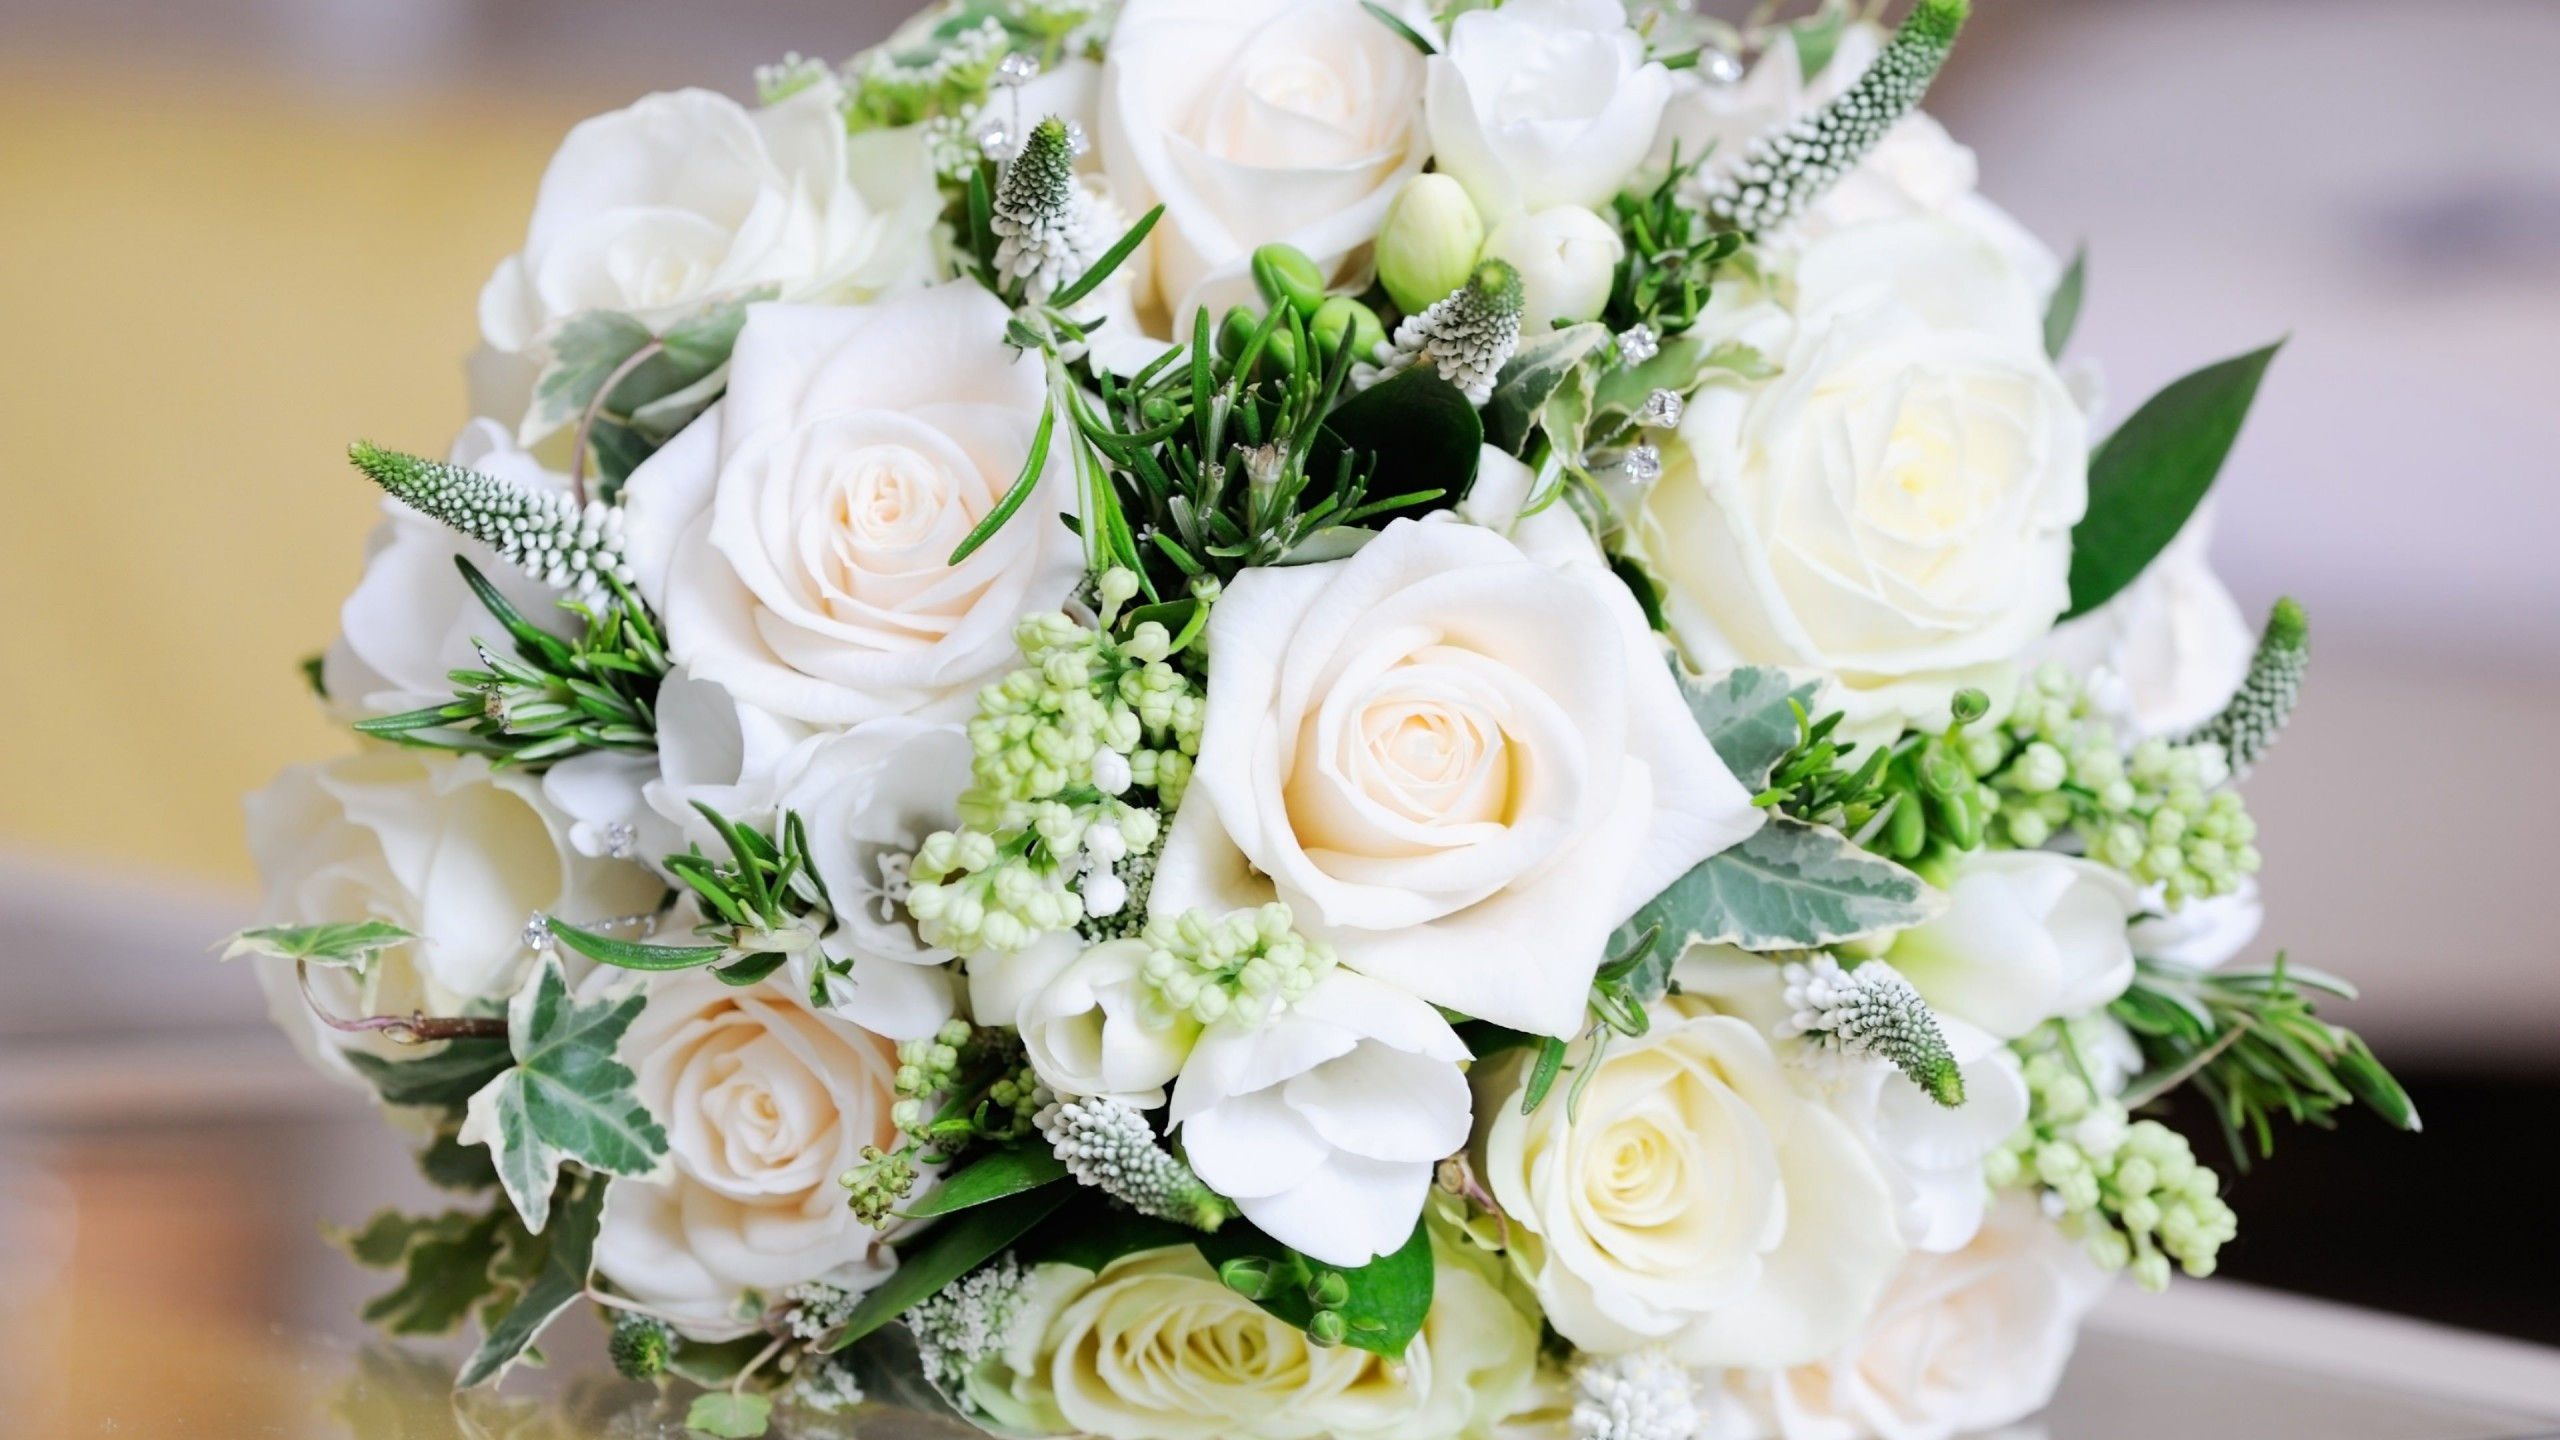 Beautiful White Roses Bouquet Wallpaper for Desktop 2560x1440